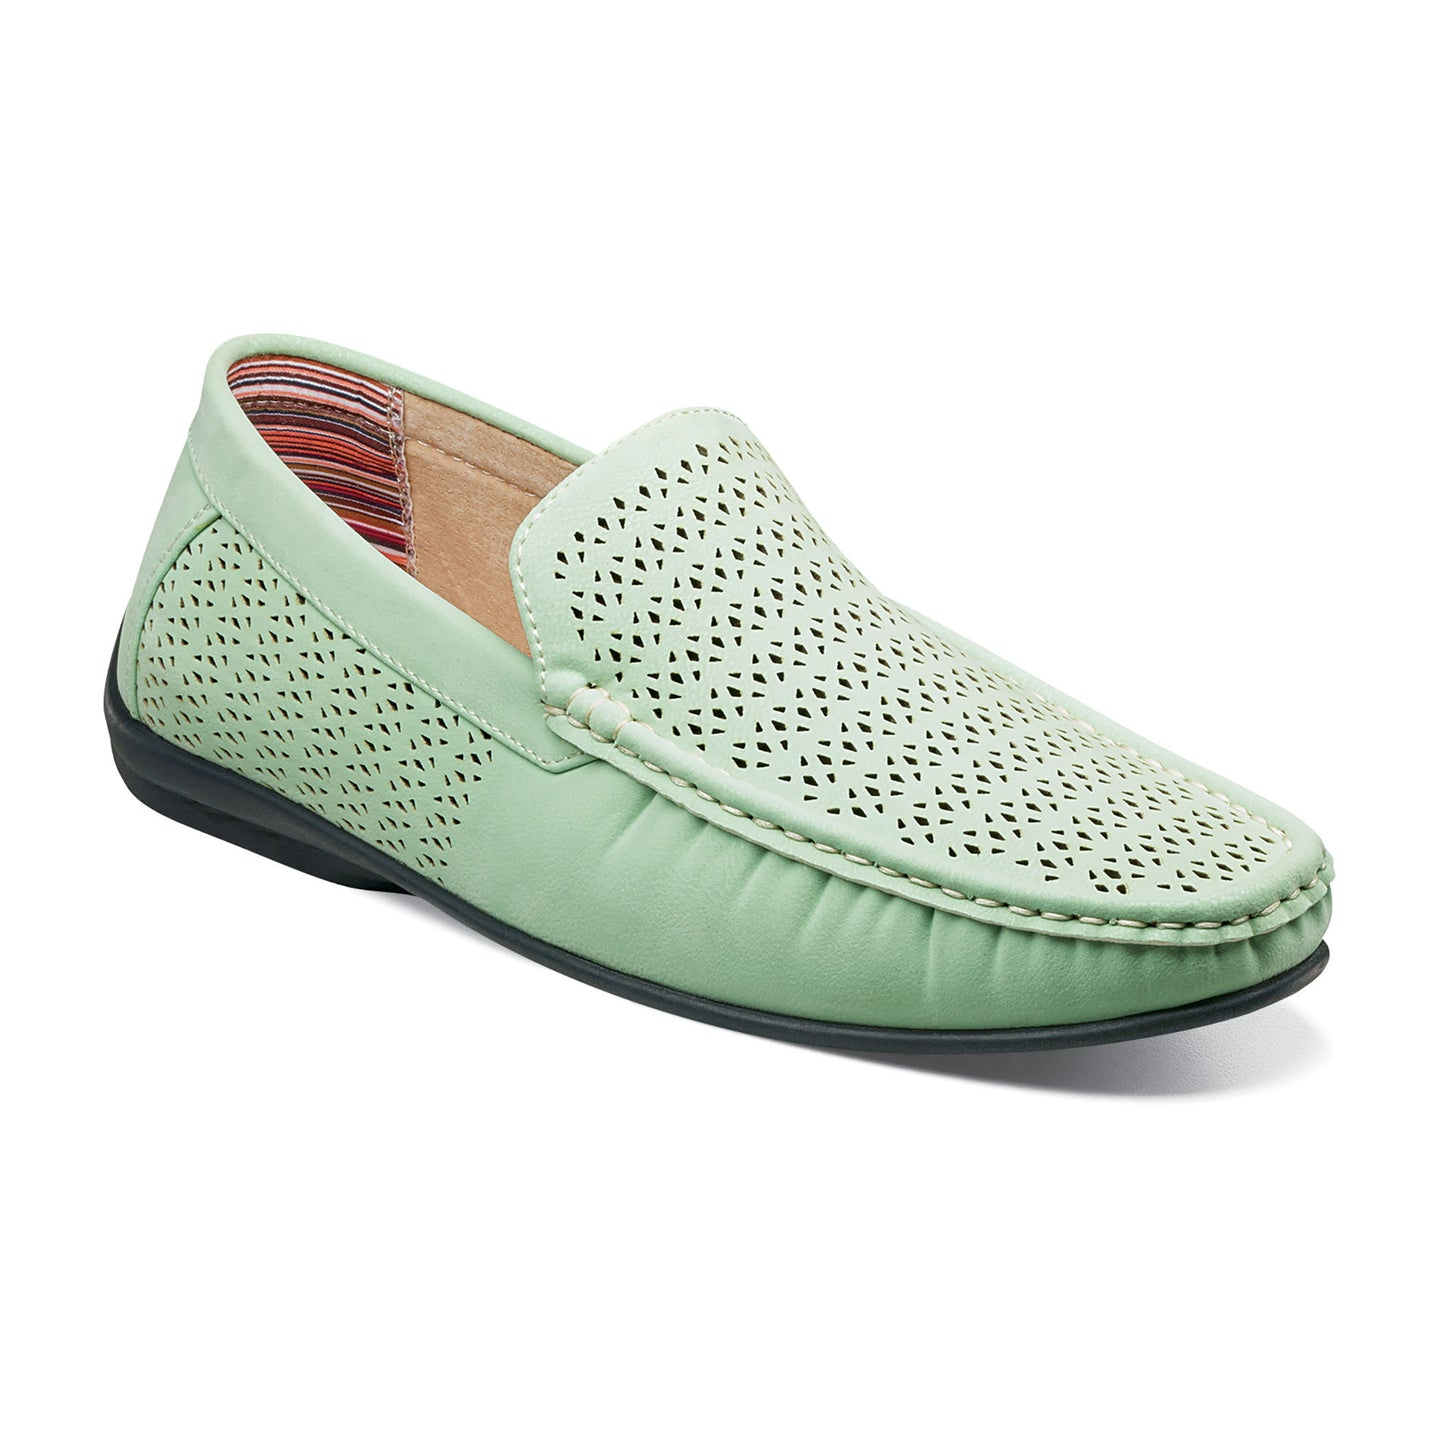 Perfed Slip On (Available in Light Aqua or White)